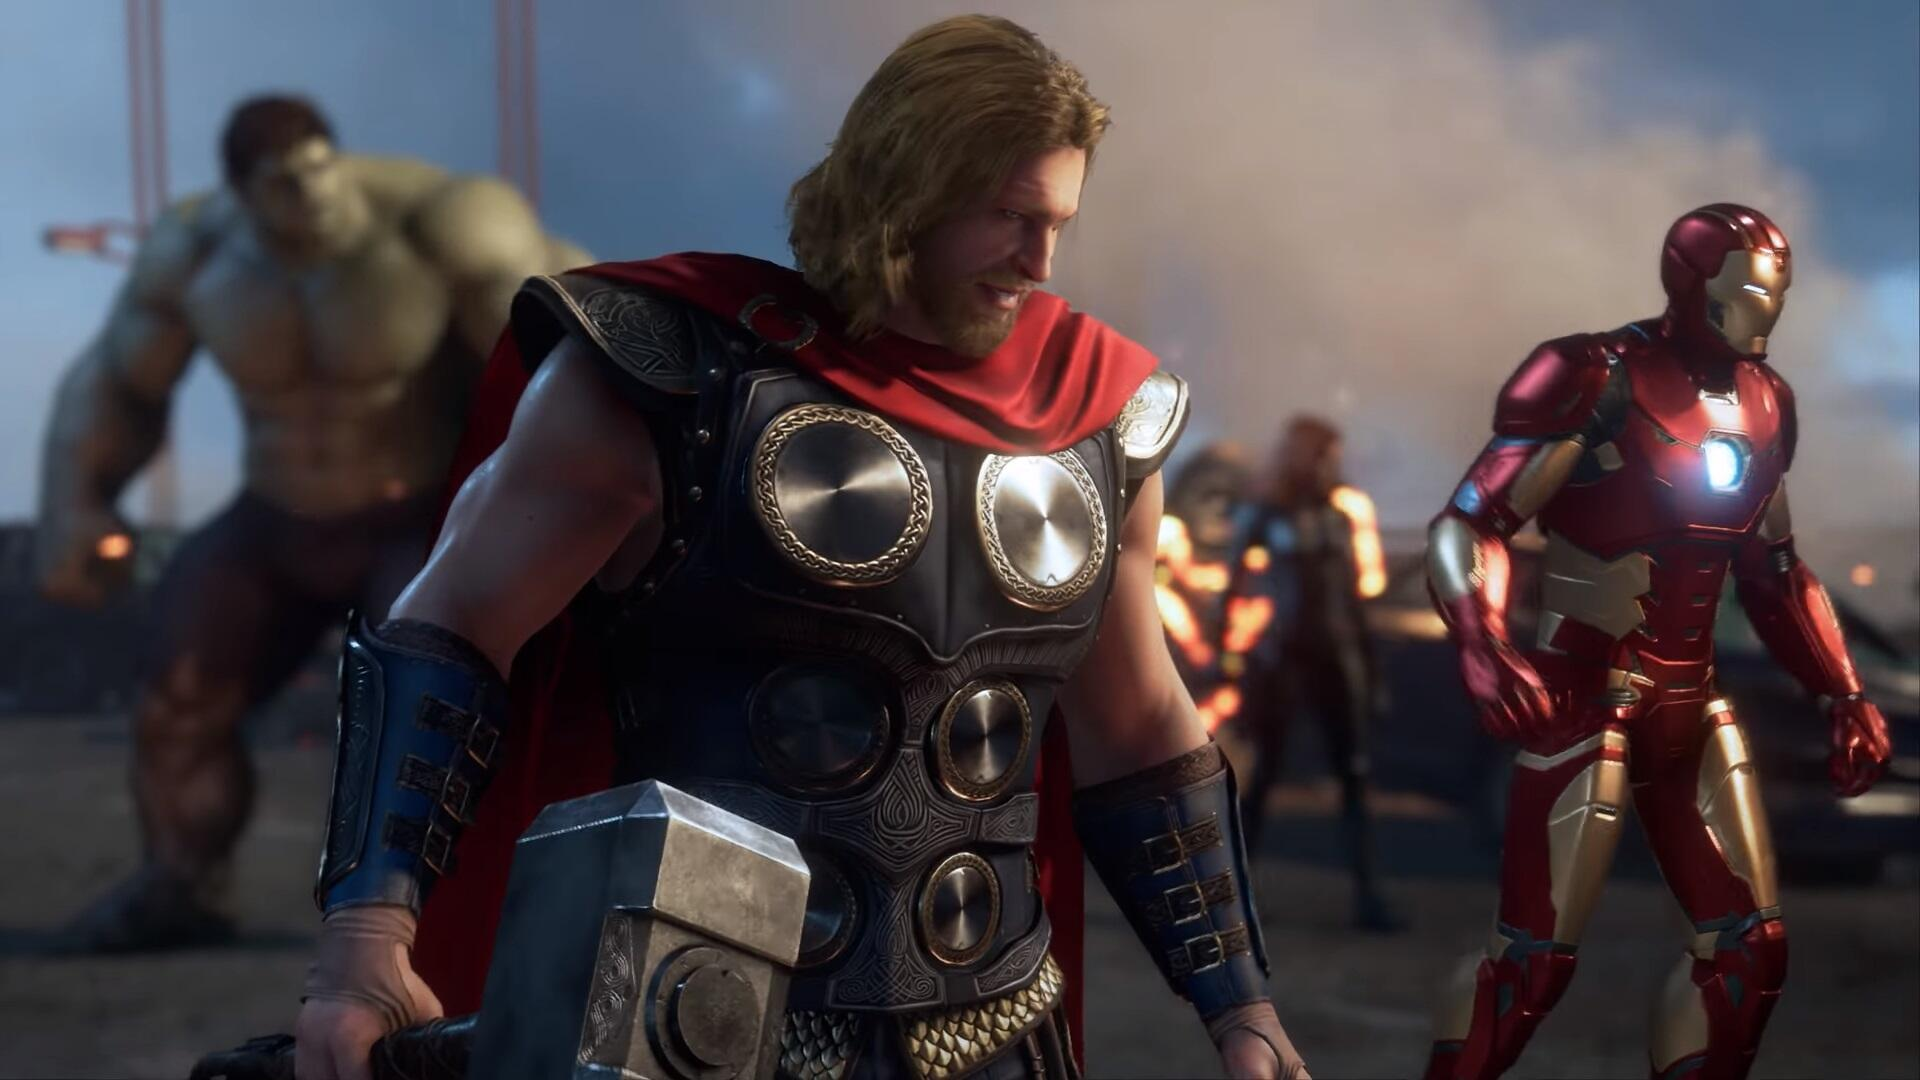 Check Out the Full 18 Minutes of Marvel's Avengers Gameplay